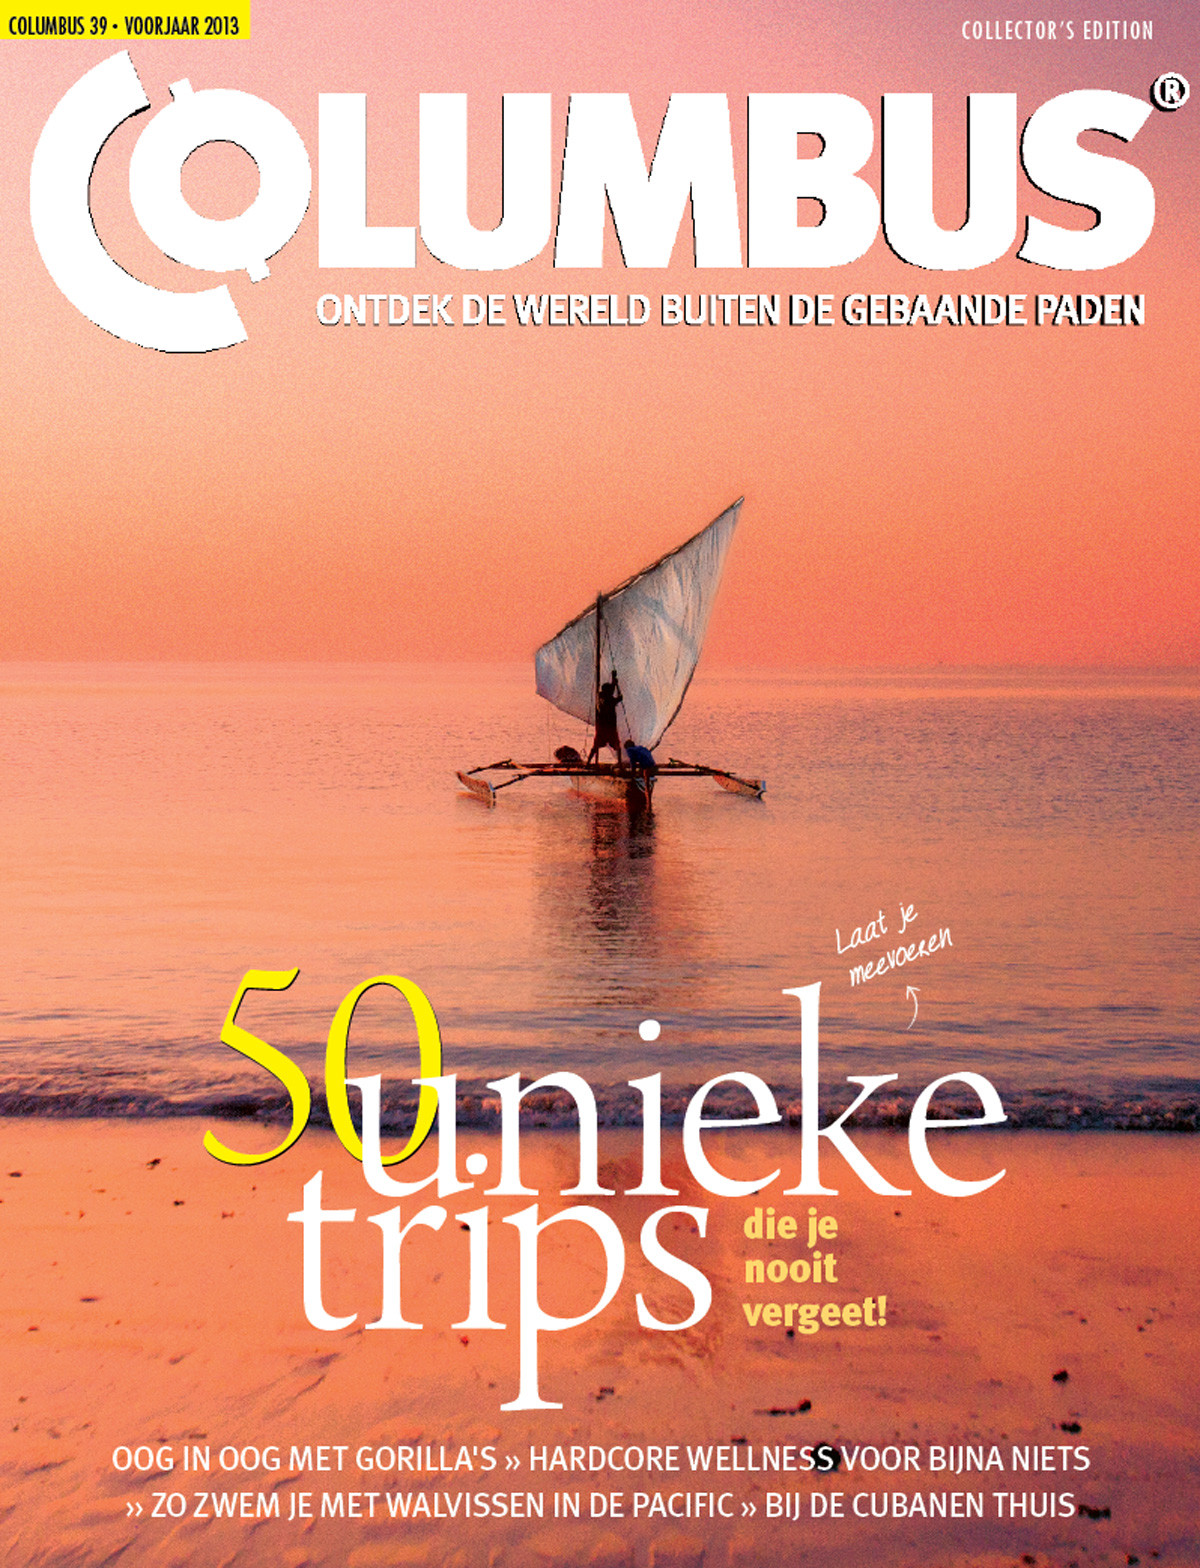 Columbus Travel magazine cover 39